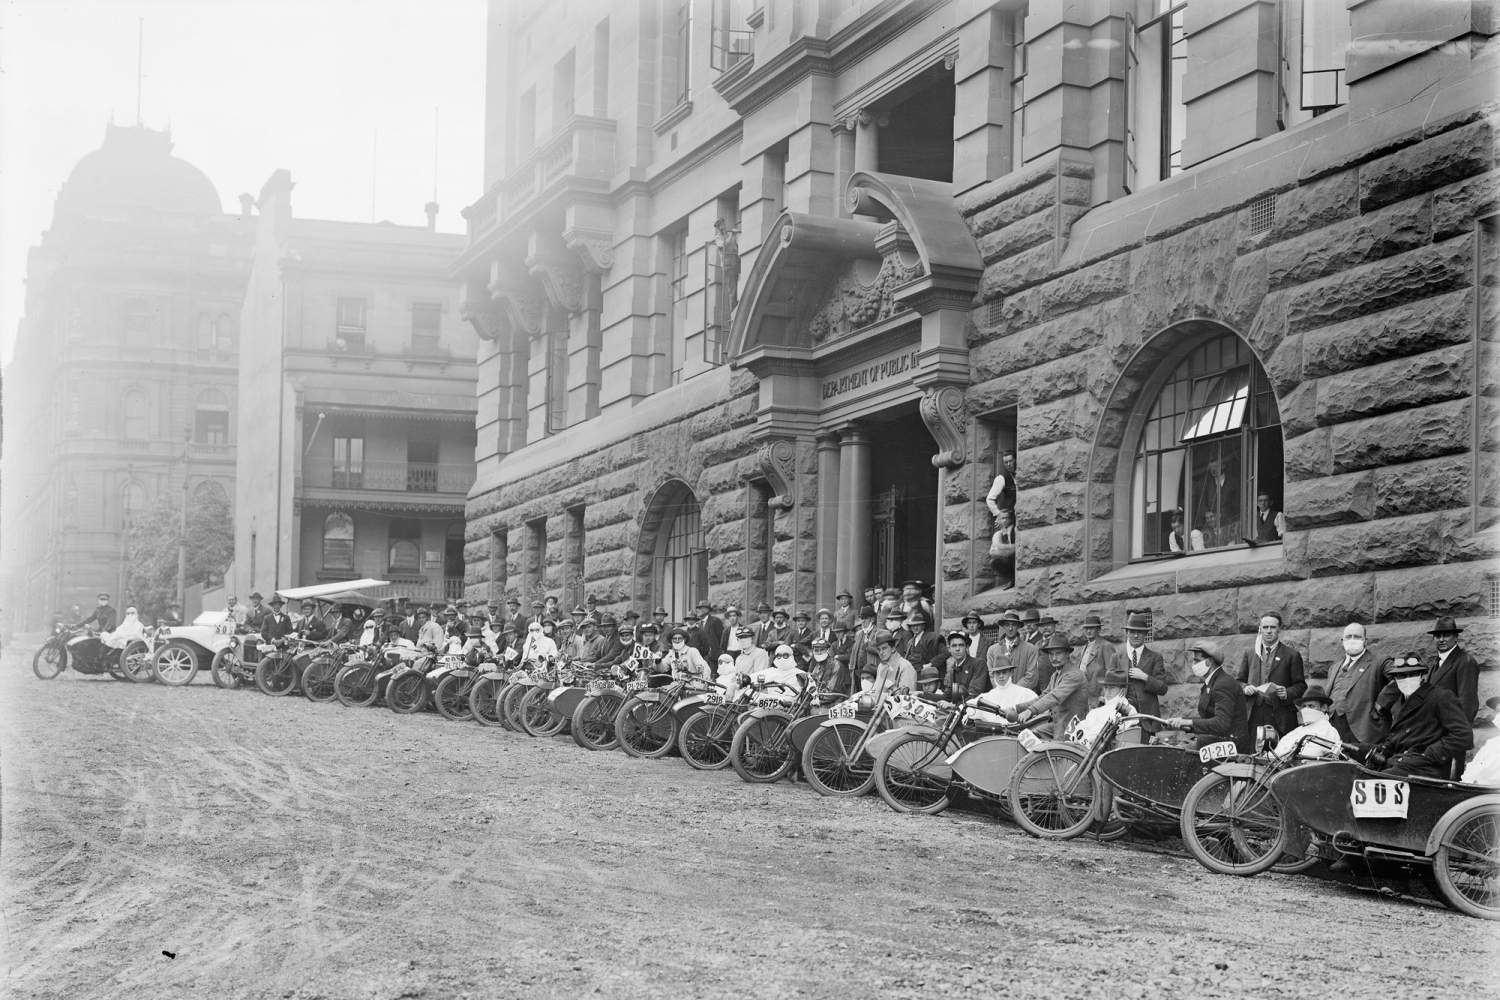 Row of motorbikes and their riders, some in masks, in front of imposing sandstone building. Black and white photo.